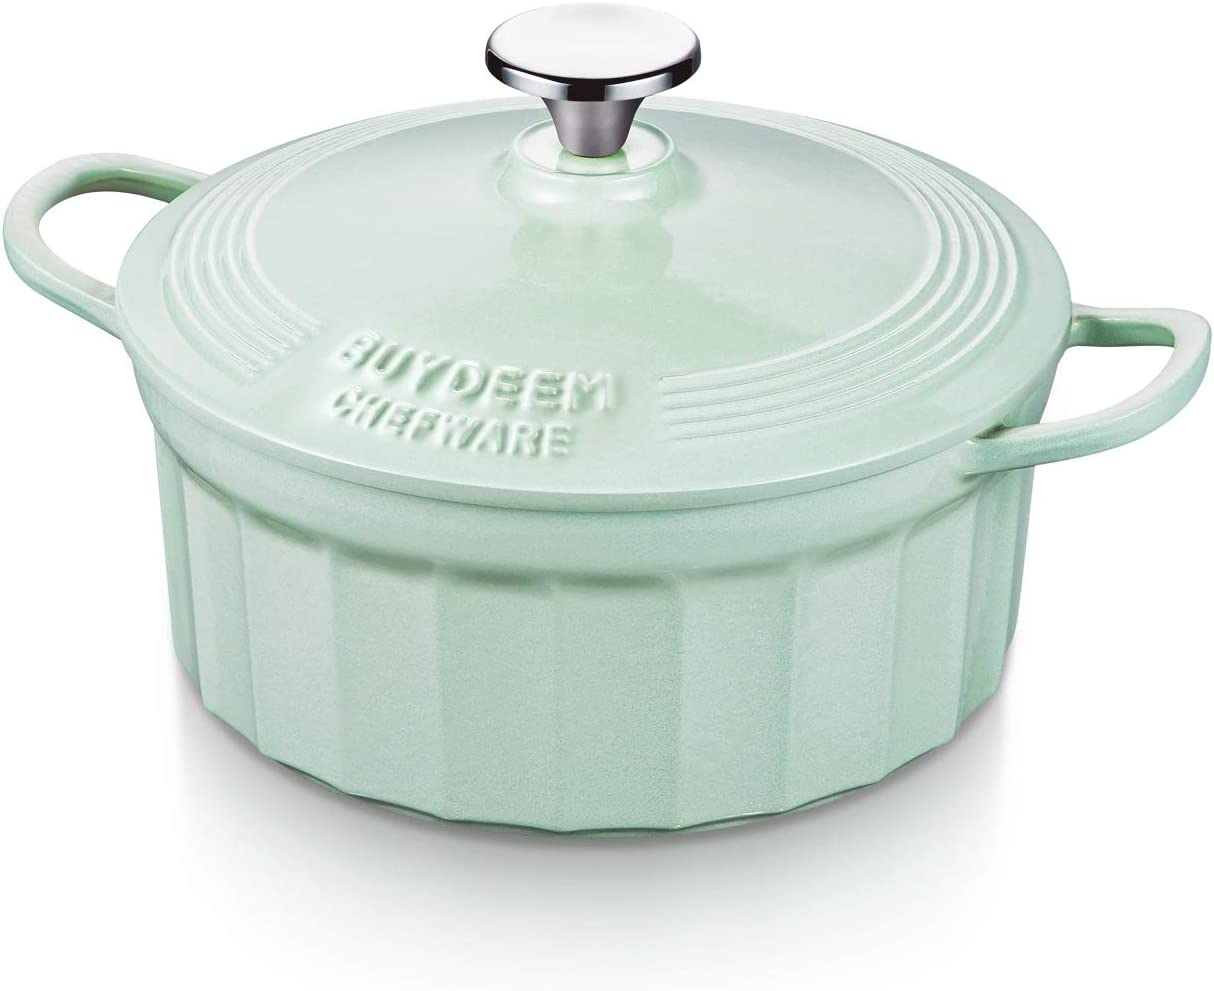 Buydeem CP521 3 Quart Dutch Oven, Enameled Cast Iron Dutch Oven with Stylish Cupcake Design, Round French Oven, Perfect for Bread Baking and Serving, Cozy Greenish